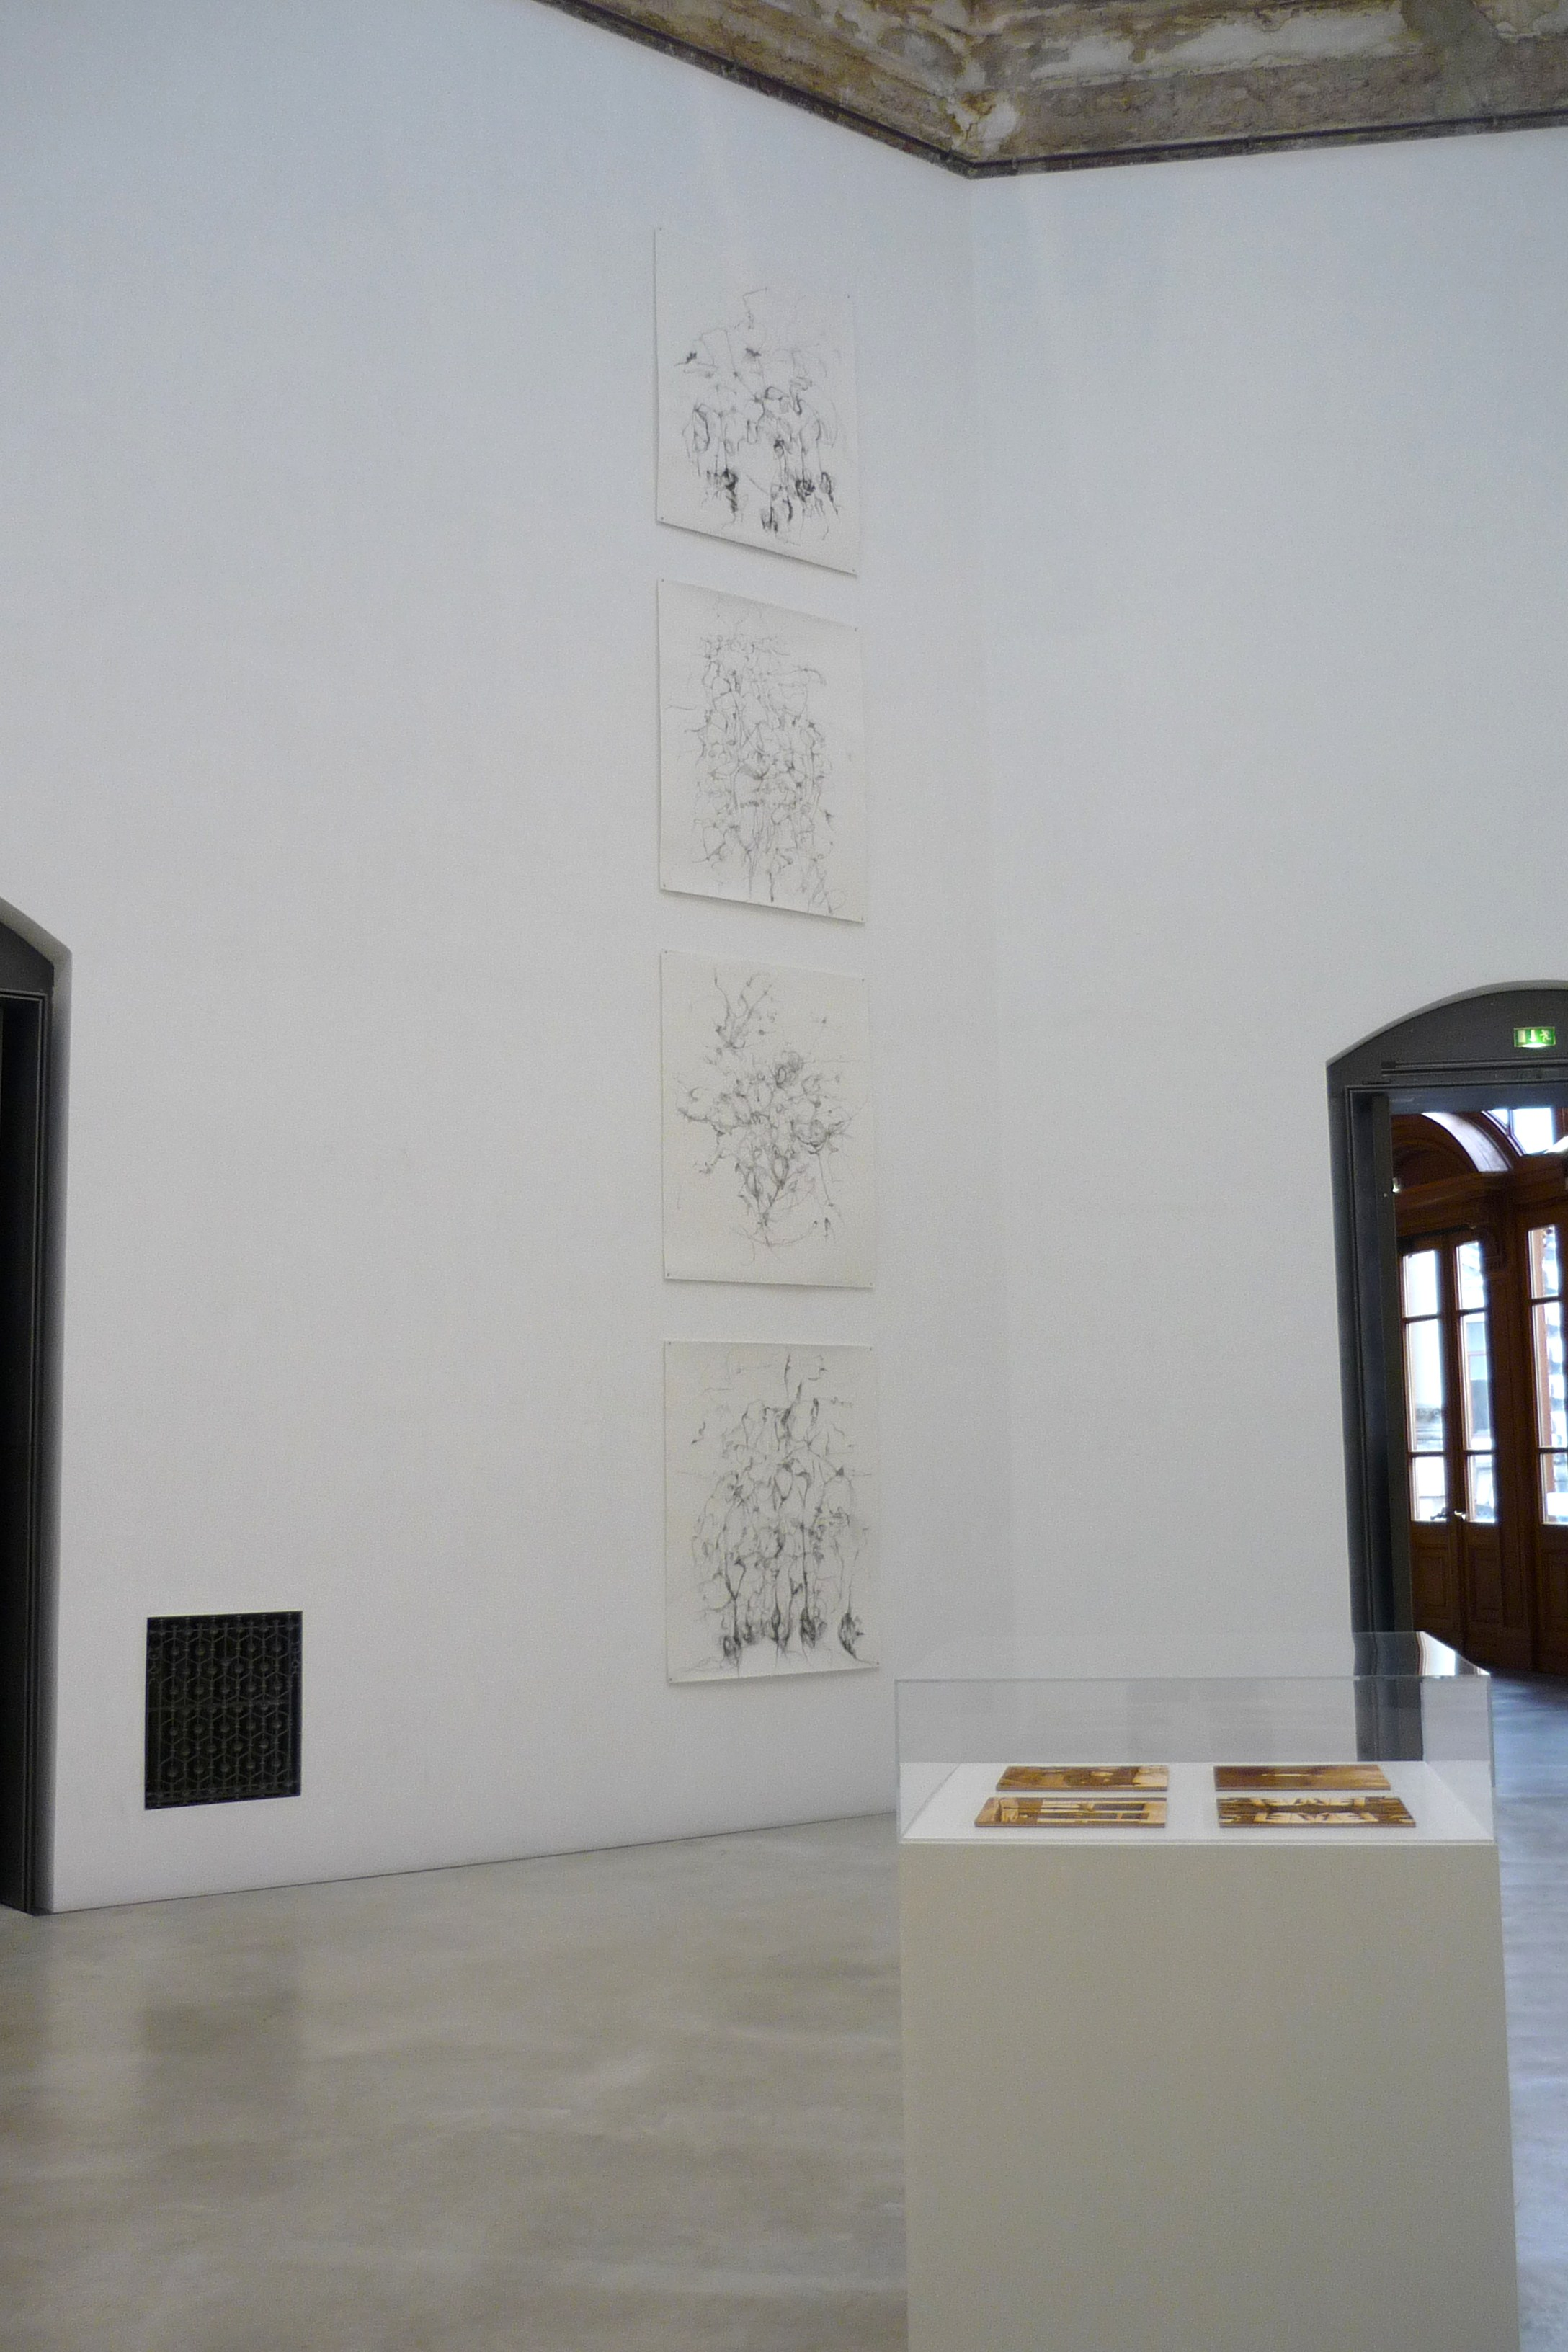 Exhibition of Chance Drawings Dresden Germany (2013)